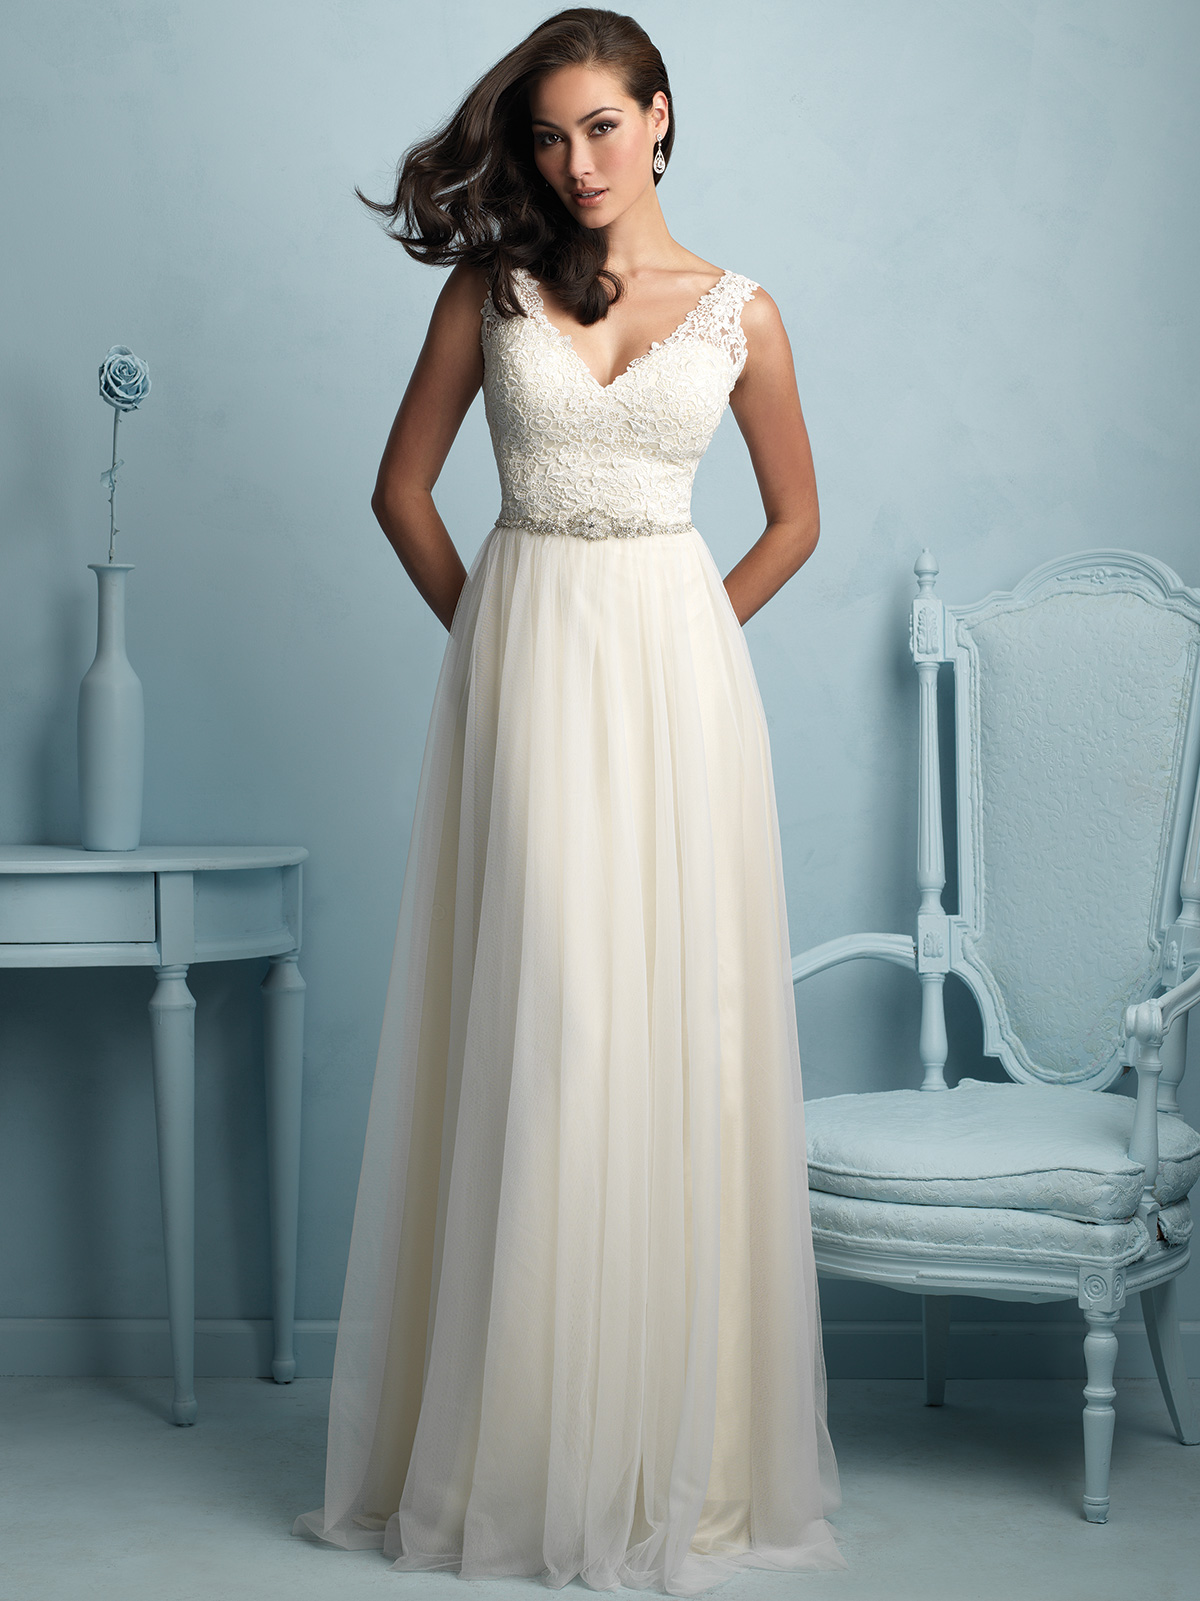 Allure Bridal Dress 9205: DimitraDesigns.com